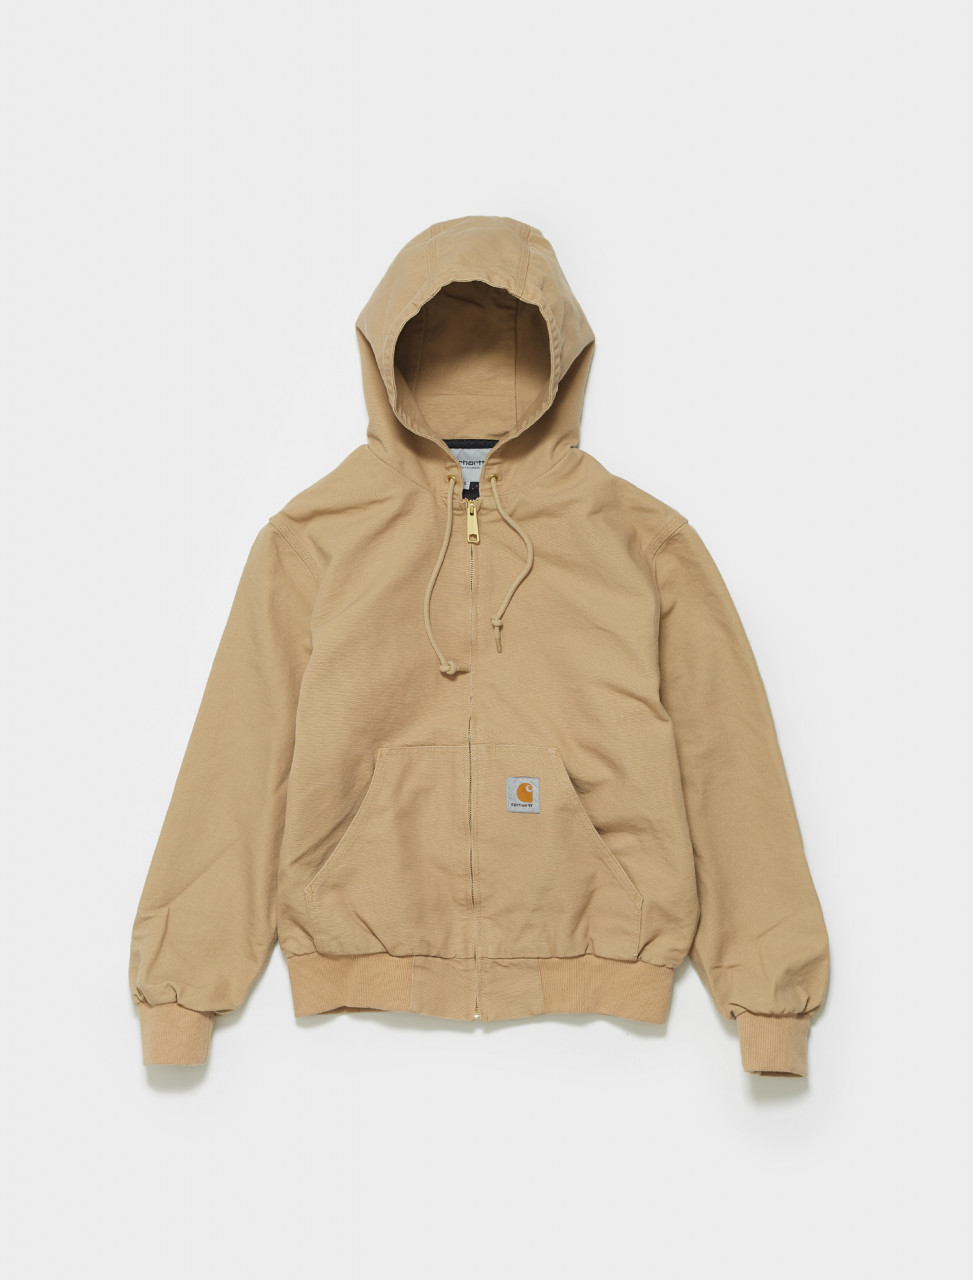 I029242-07E CARHARTT ACTIVE JACKET IN DUSTY H BROWN